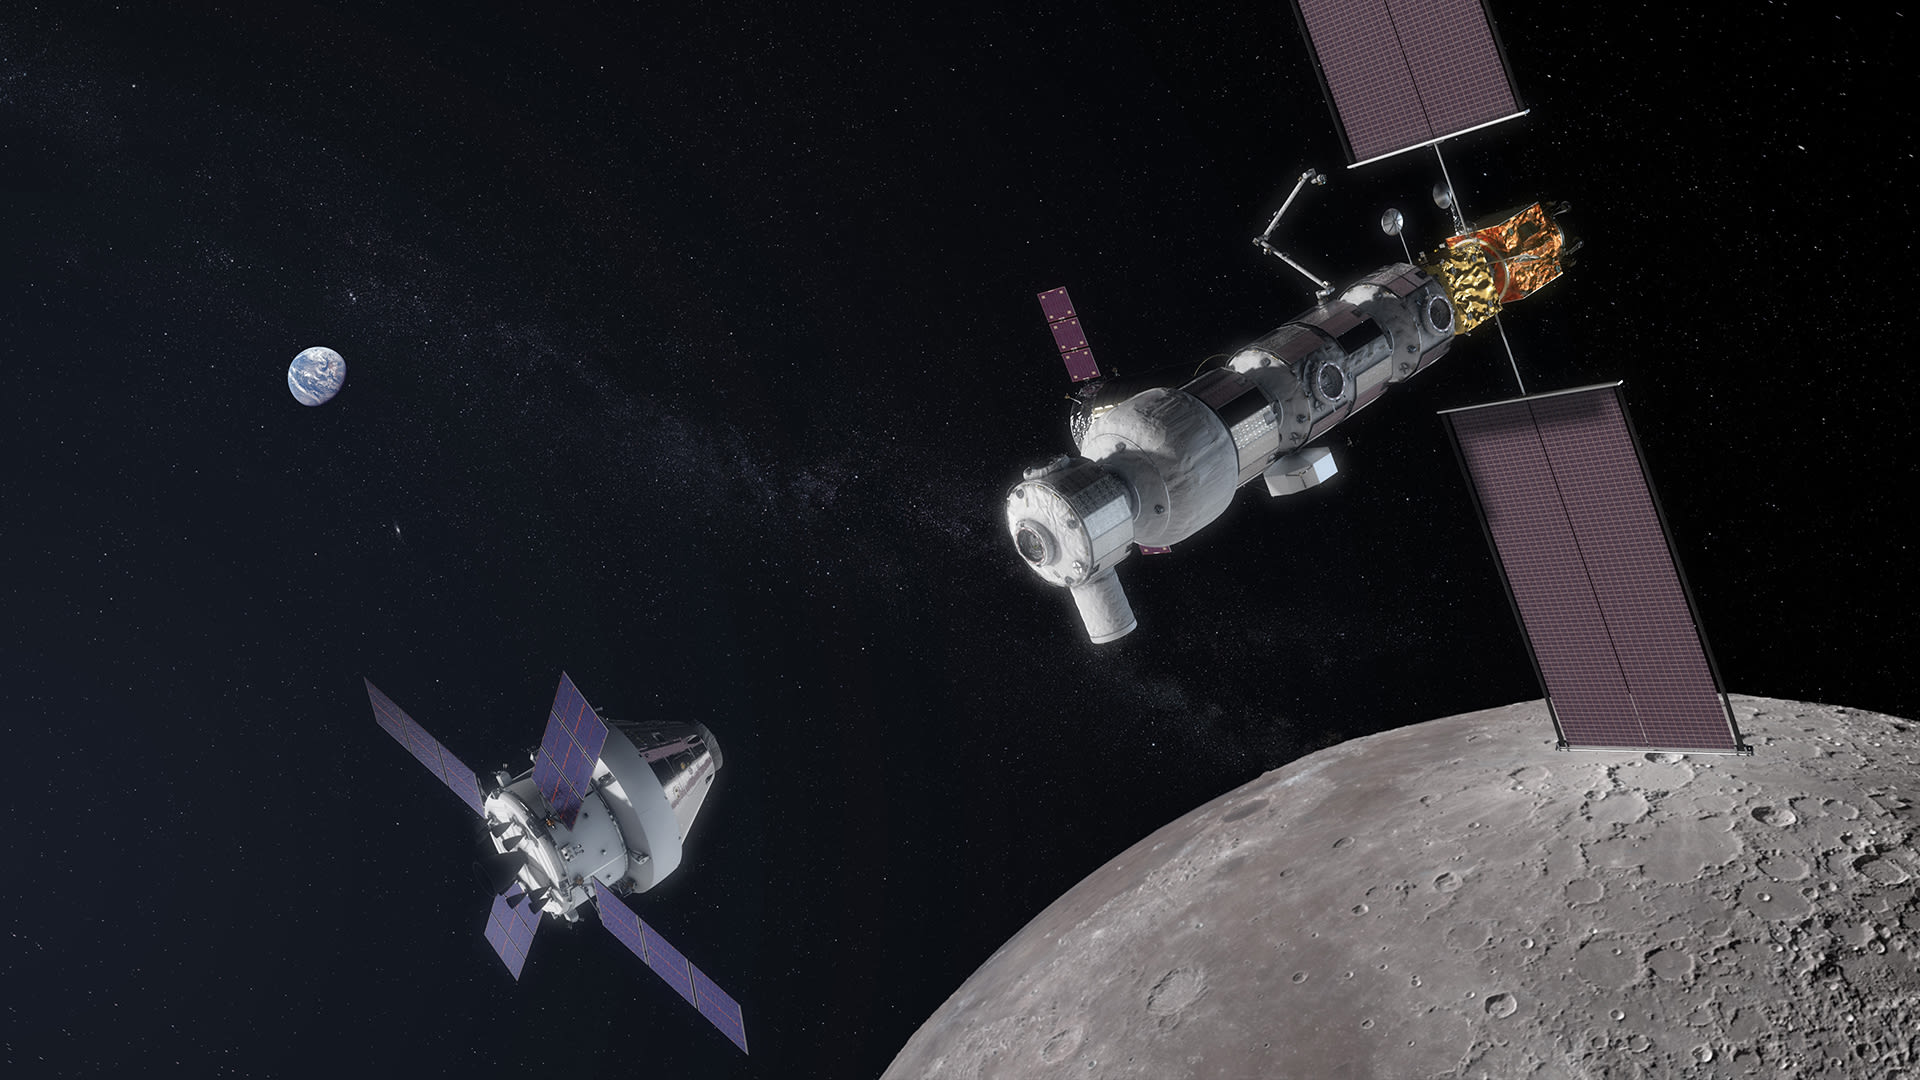 Nasas Plan To Return To The Moon With Project Artemis